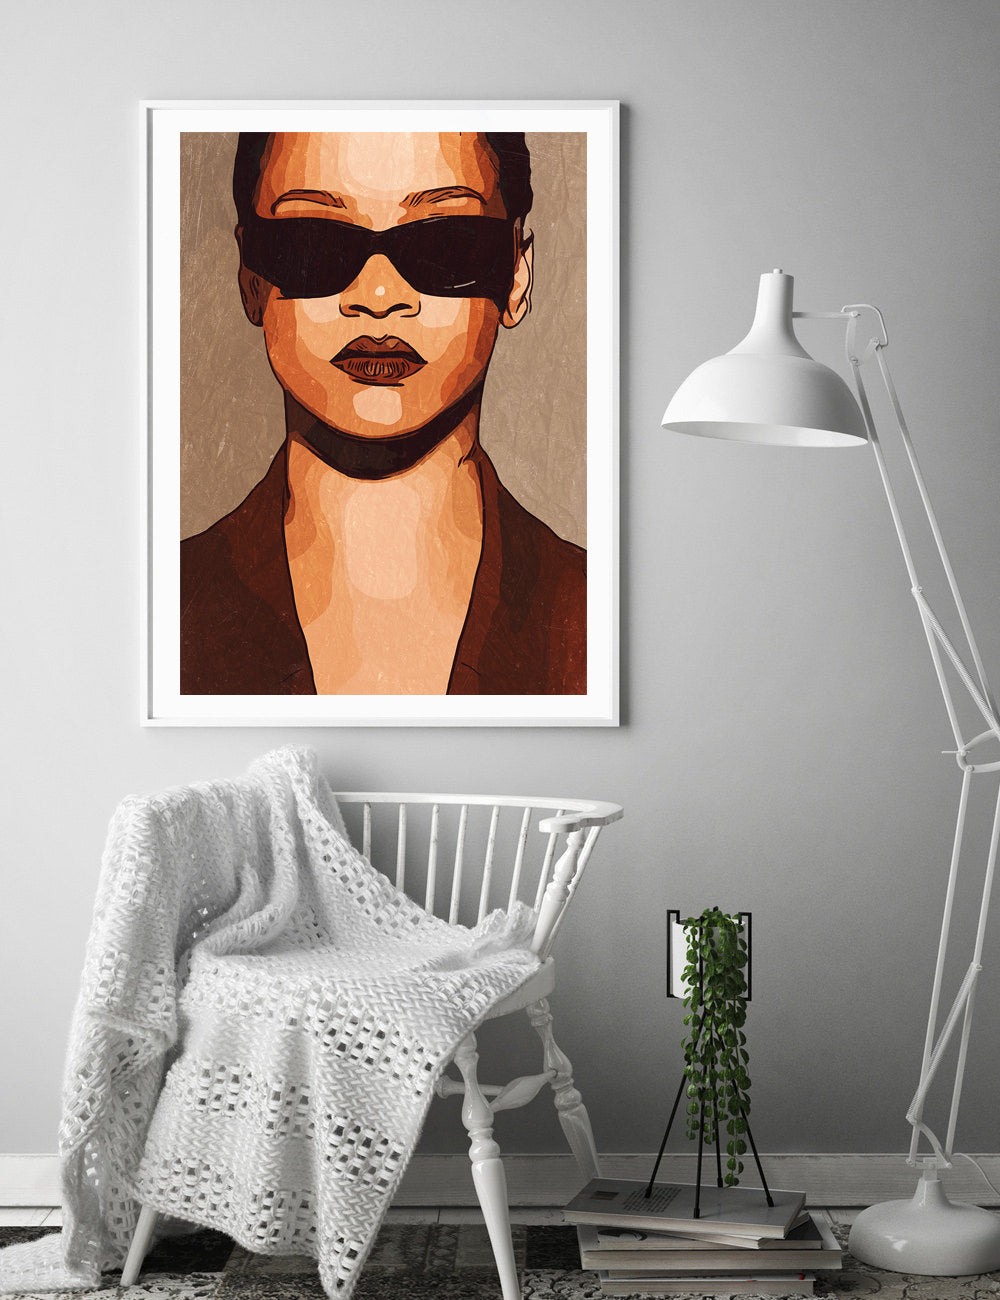 Rihanna Poster,Rihanna Print,Rihanna Home Decor,Rihanna Giclee Print,Music Poster,Instant Download,Pop Culture,Painting,Black and White Art